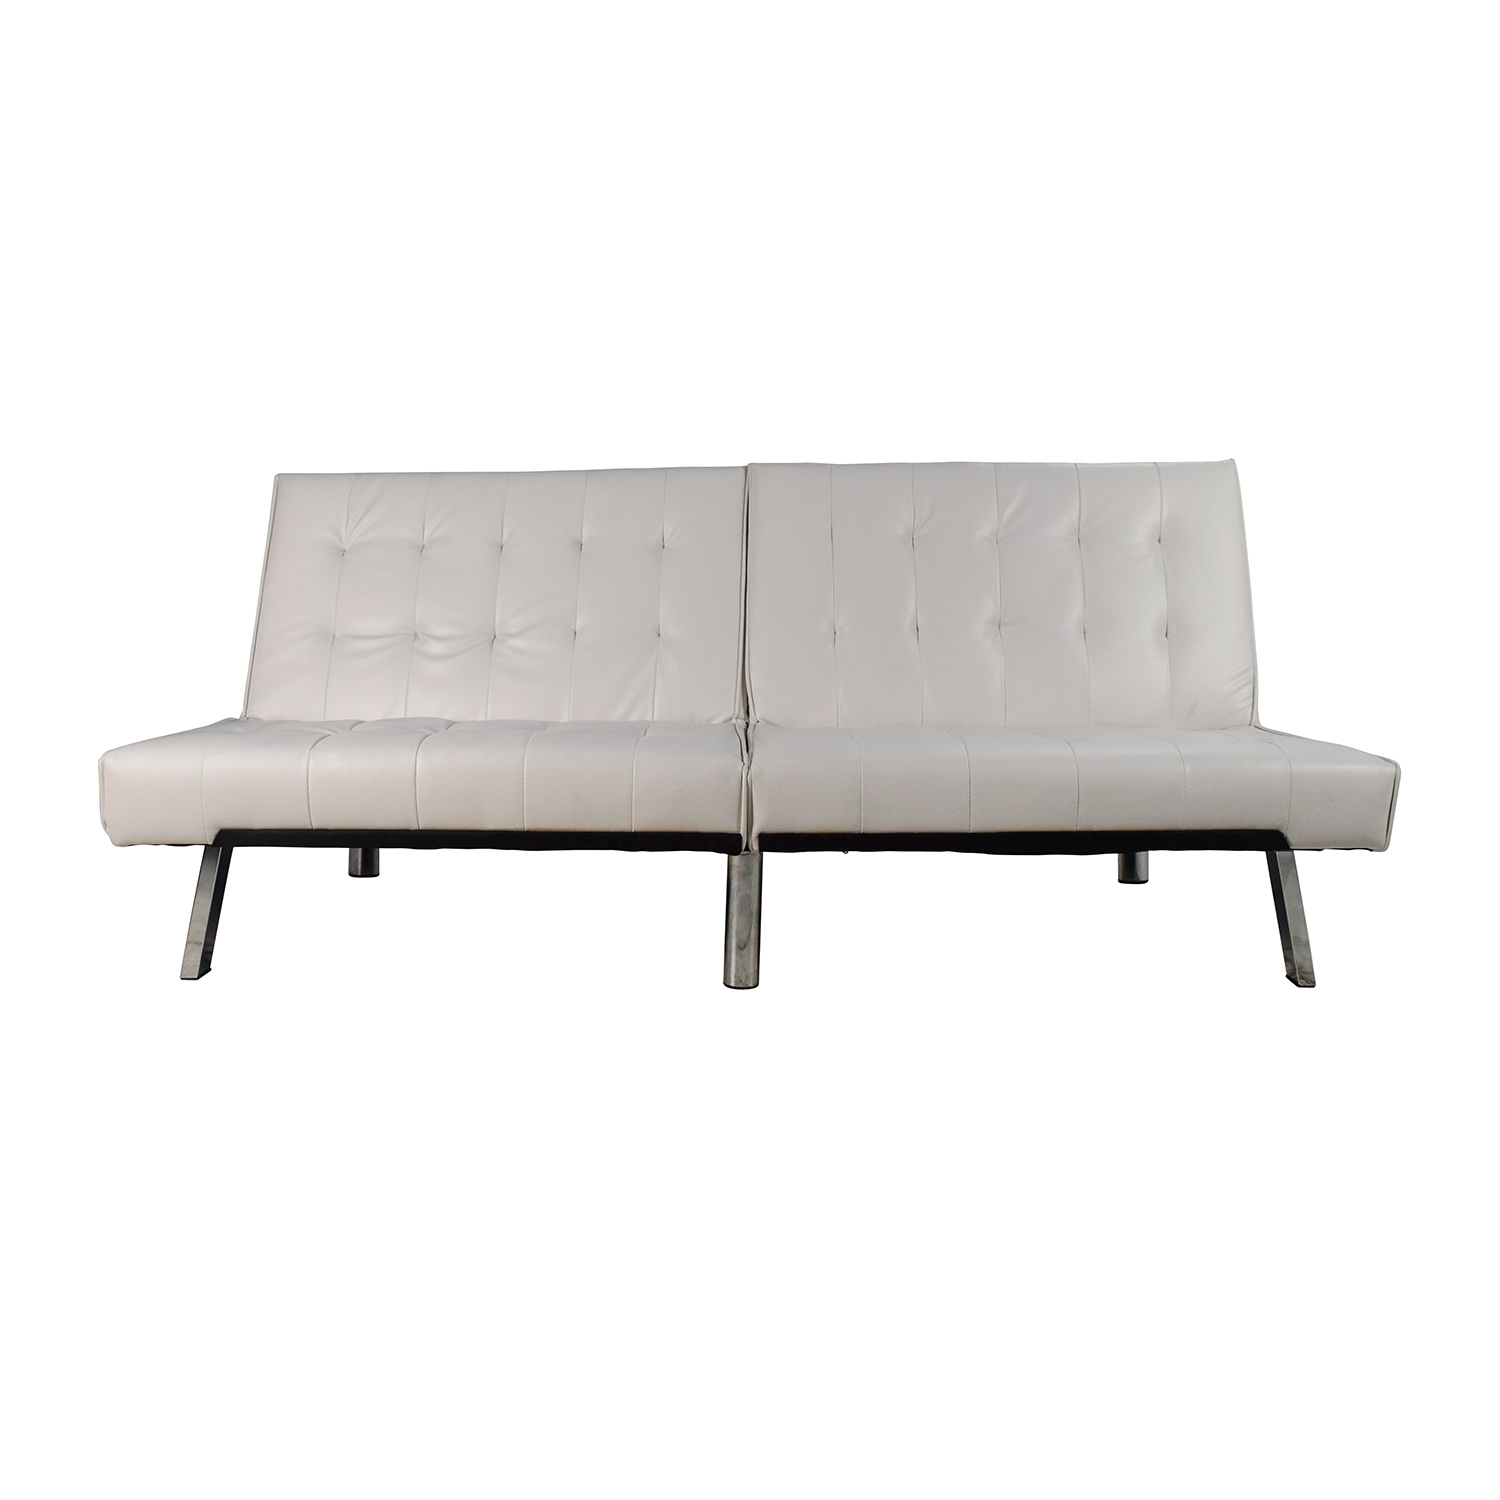 Dhp Emily Convertible Faux Leather Futon Second Hand